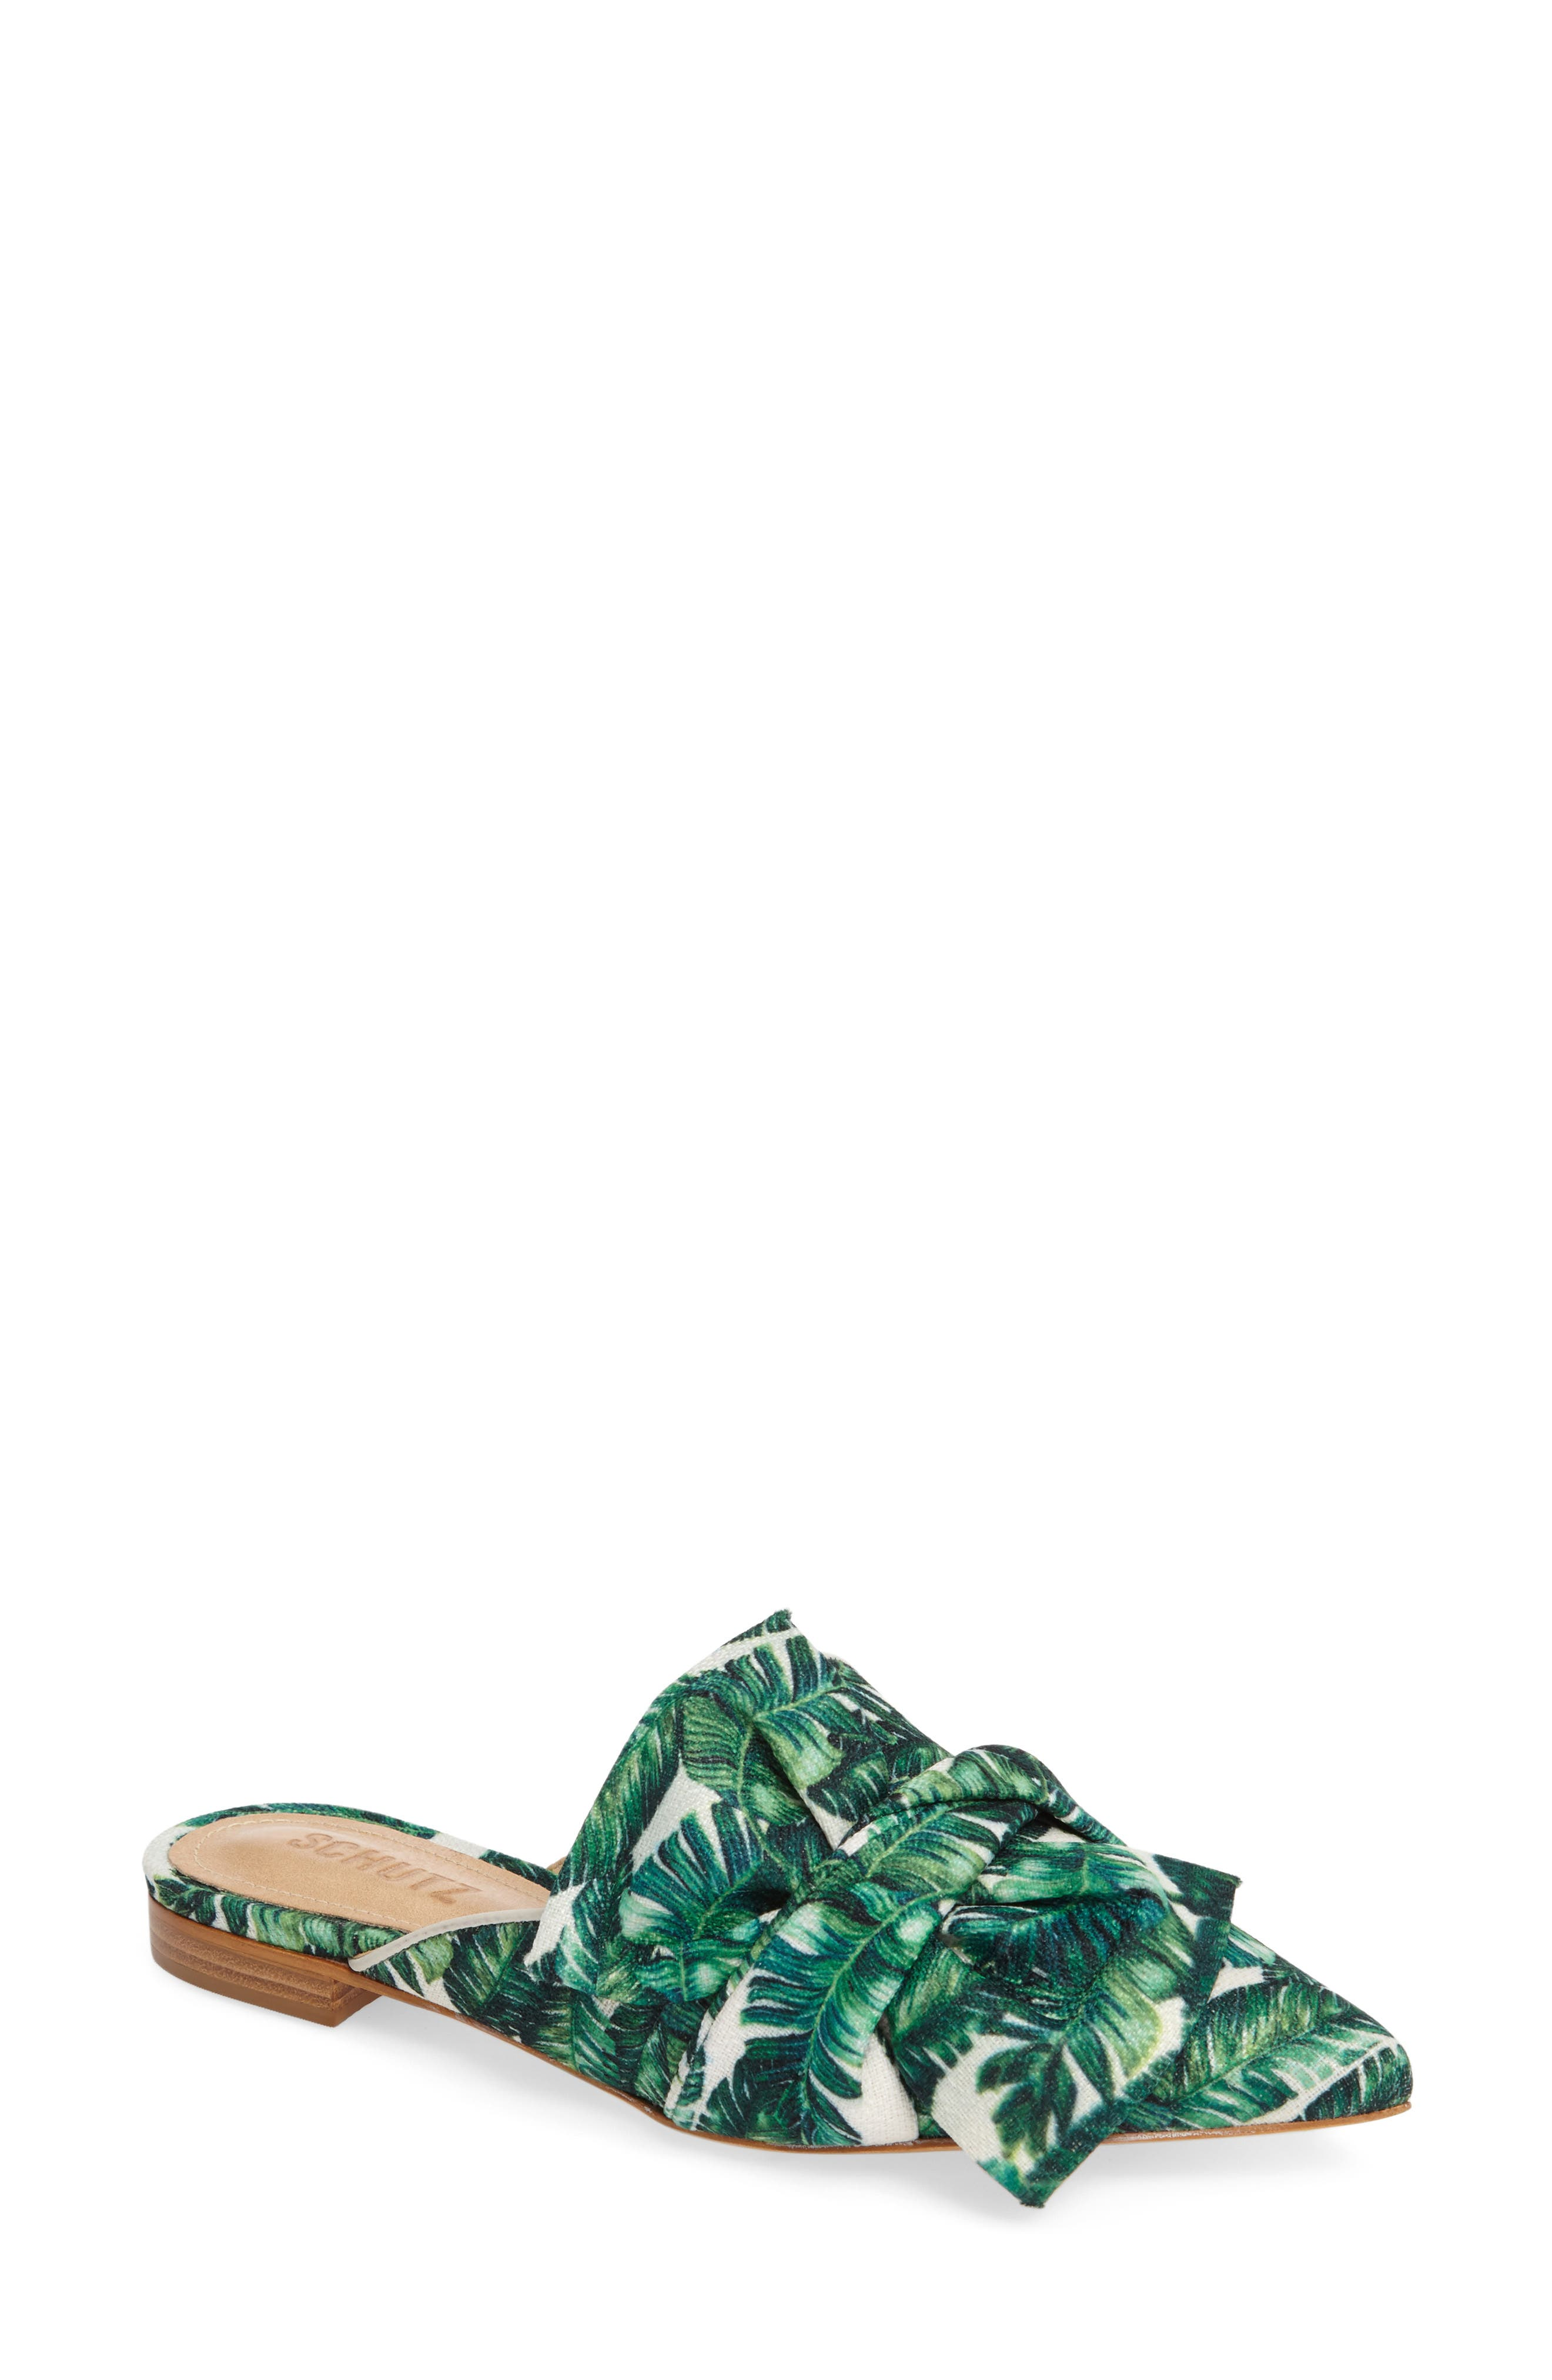 SCHUTZ,                             D'Ana Knotted Loafer Mule,                             Main thumbnail 1, color,                             100